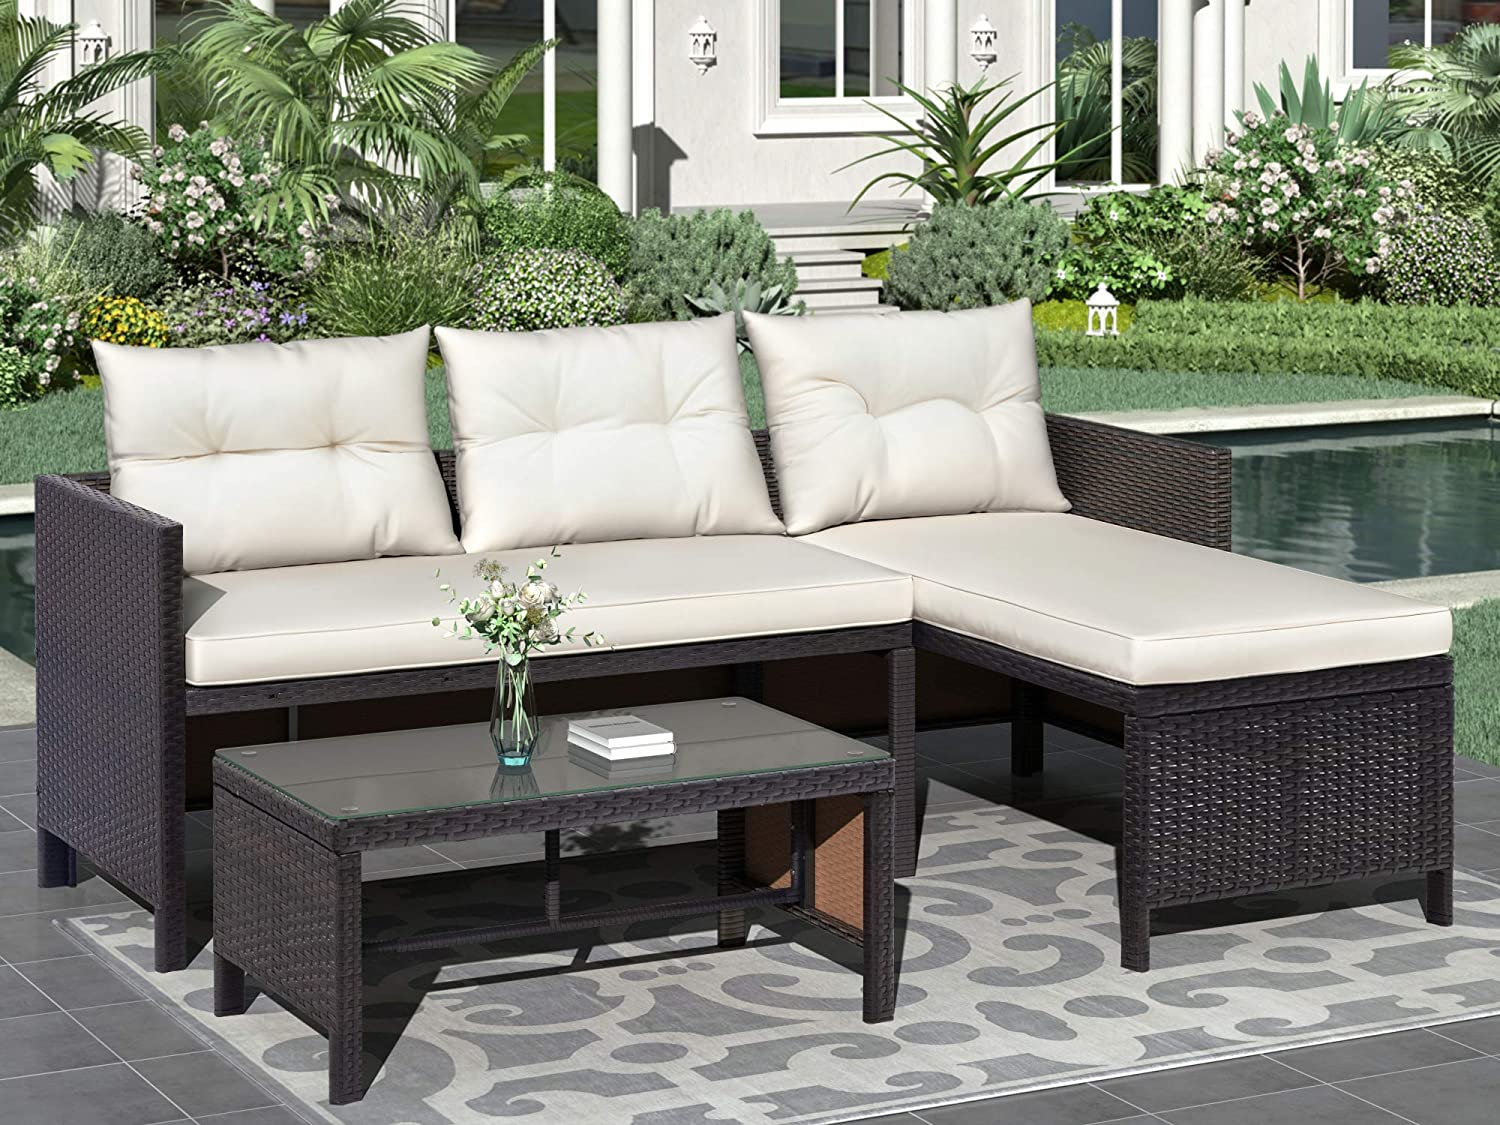 WHNB 3 Pieces Patio Furniture Set and Outdoor Side Rattan Super Outlet sale feature sale Sofa